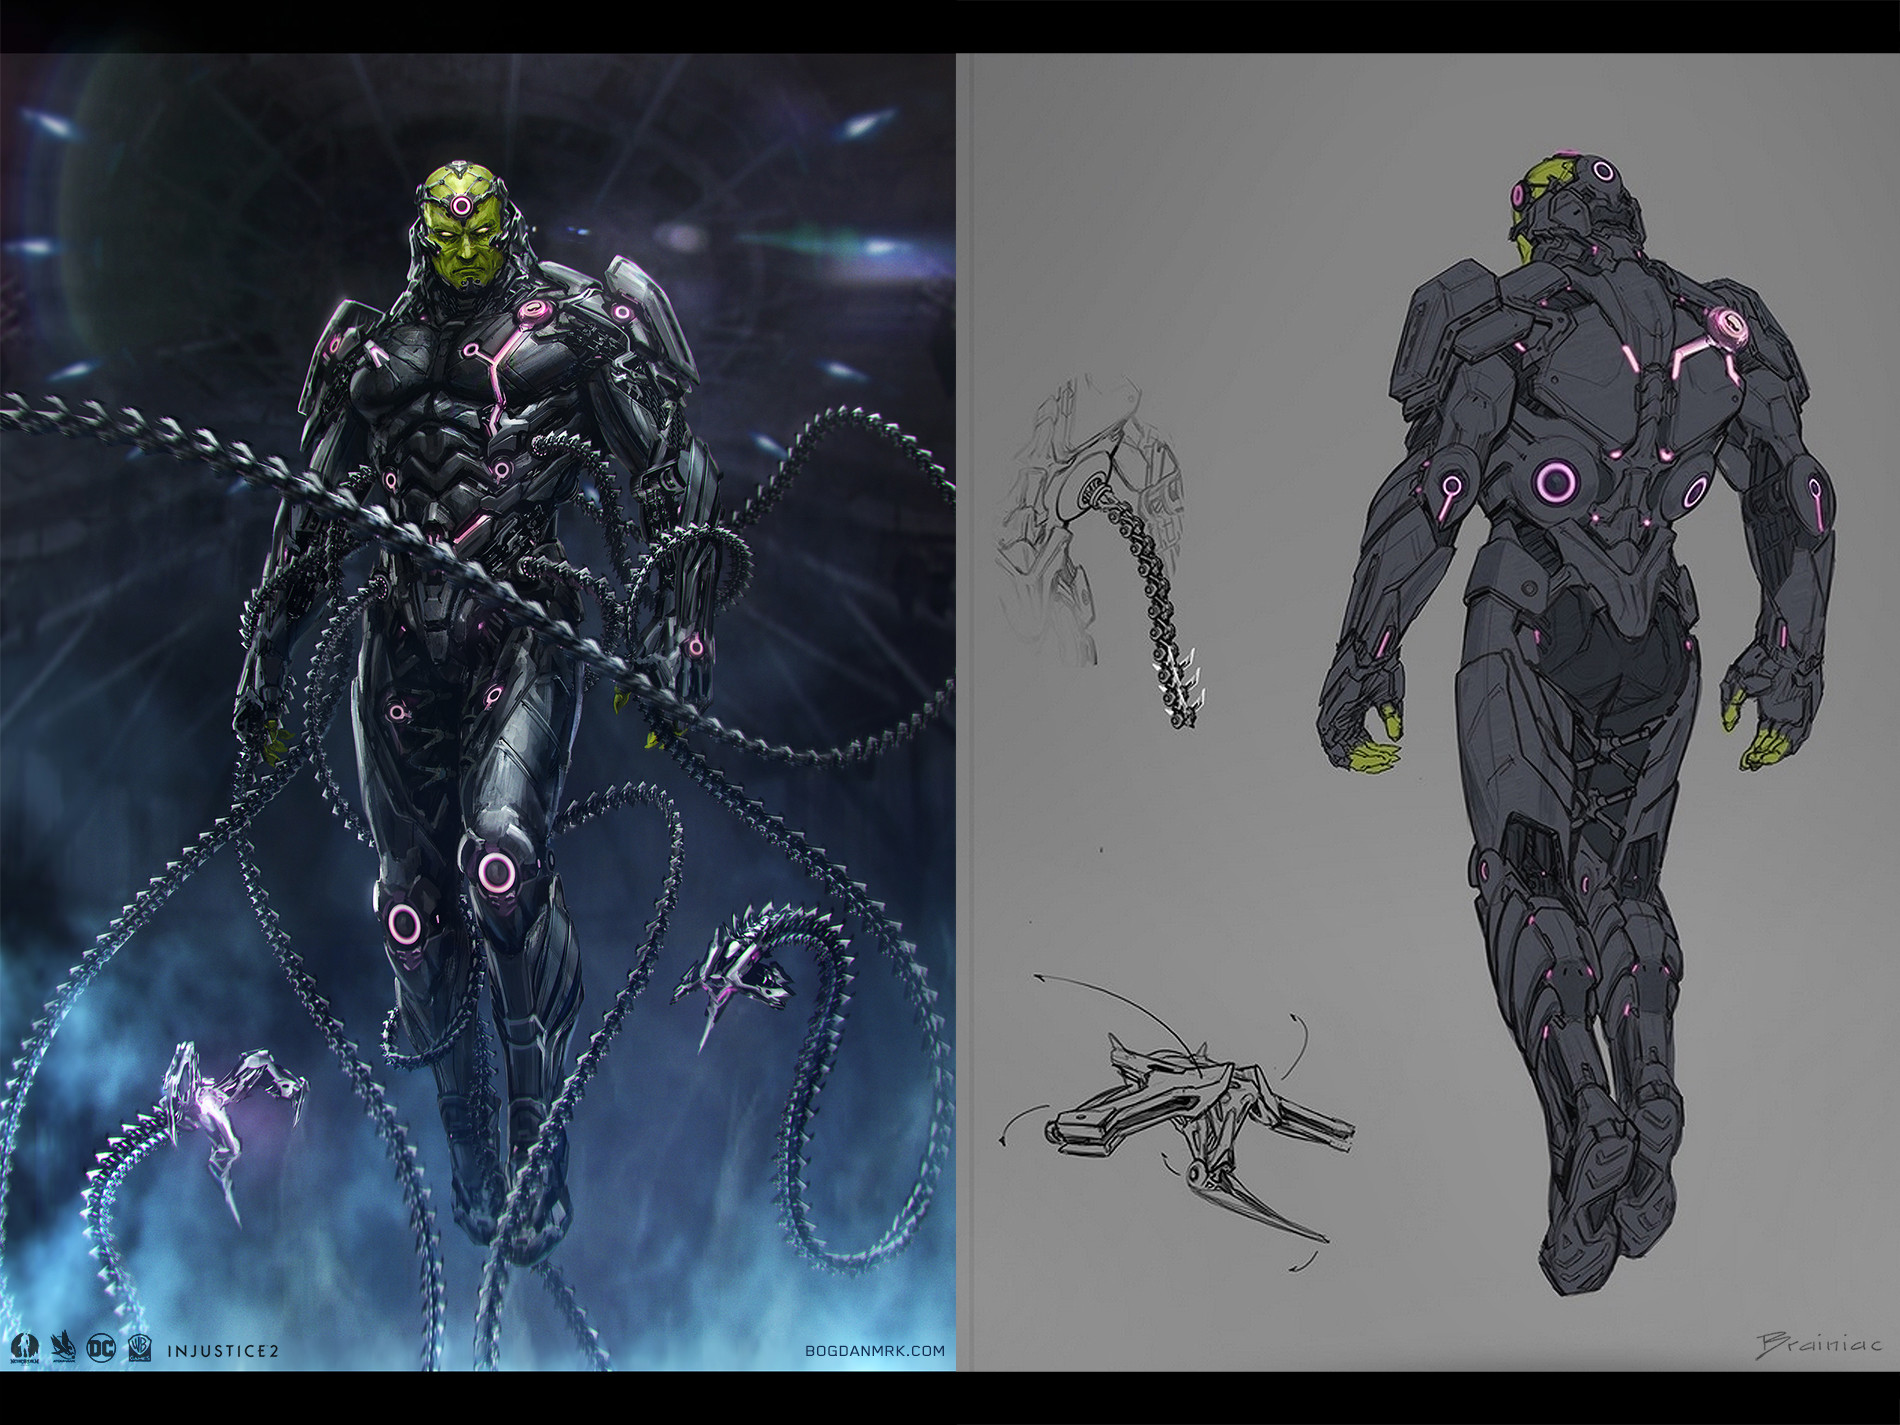 Bogdan marica bogdanmrk brainiac injustice 2 back view